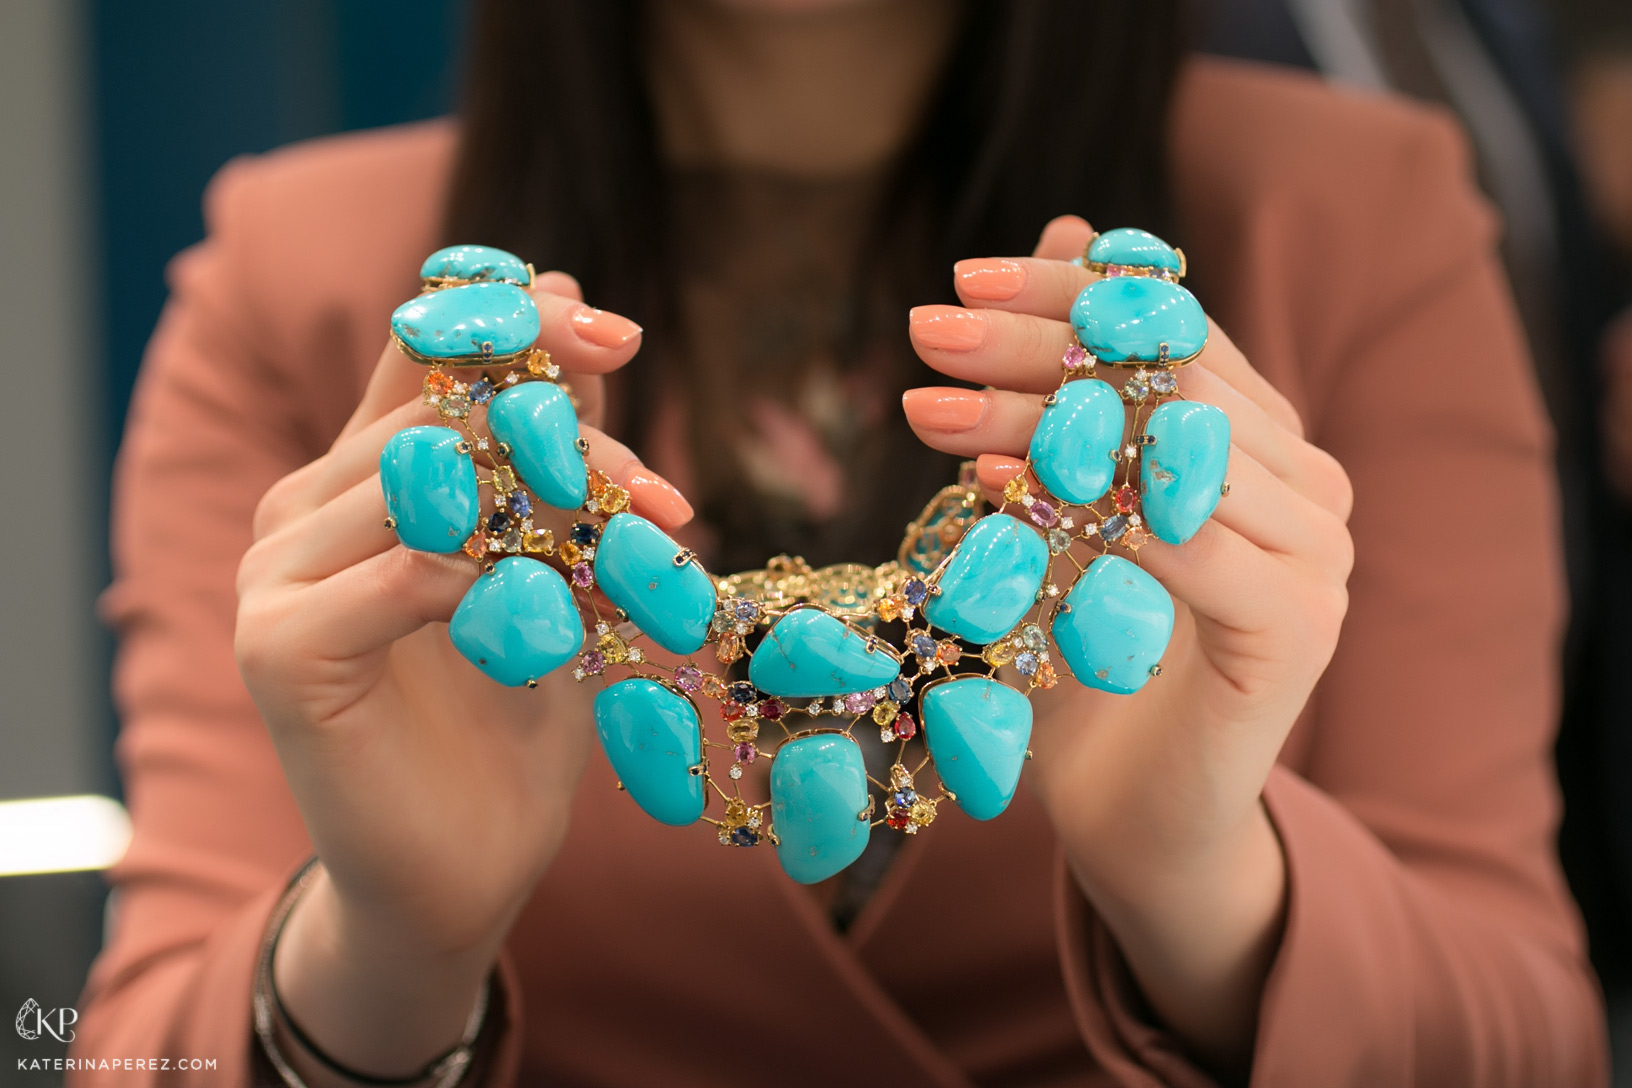 De Simone necklace with turquoise, multi-coloured sapphires and diamonds